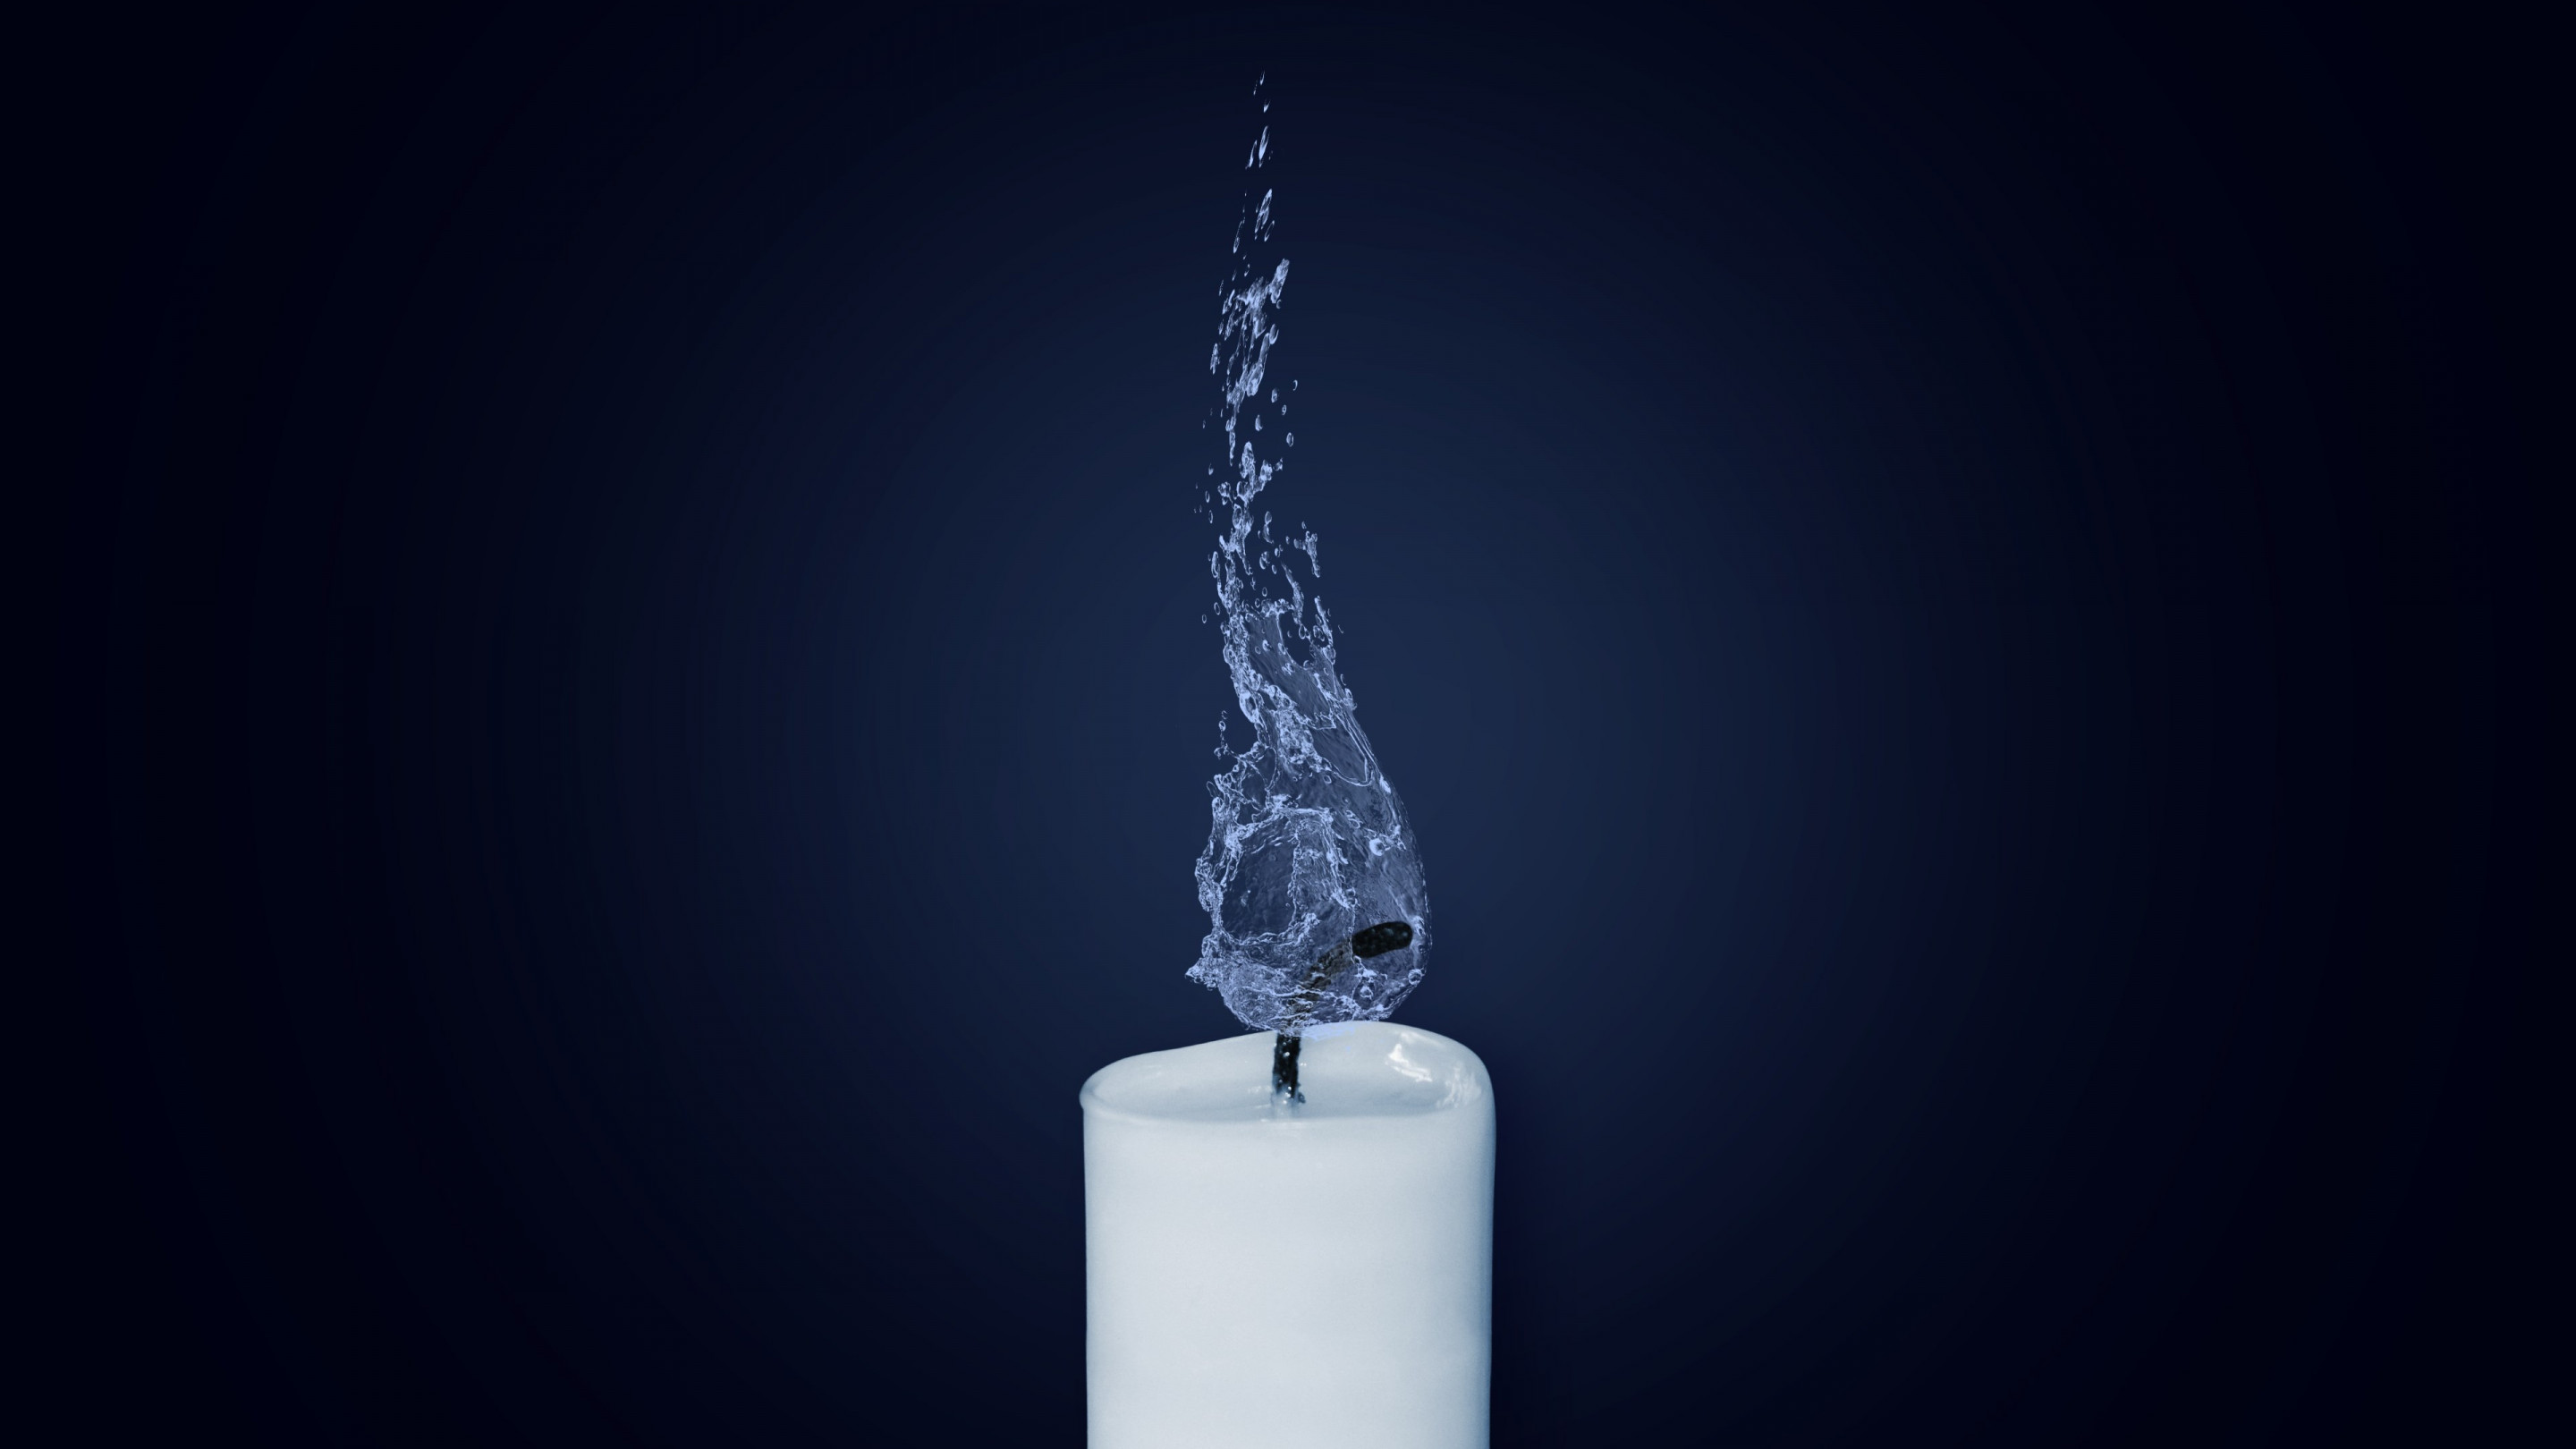 Water Flame. Candlelight | 2880x1620 wallpaper